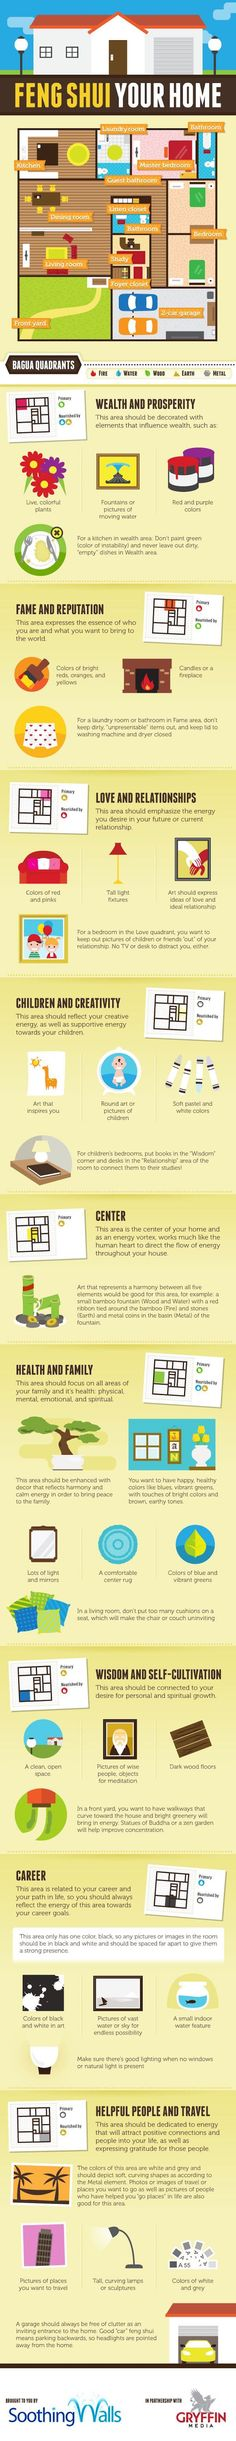 Bring Harmony To Your Home With Feng Shui